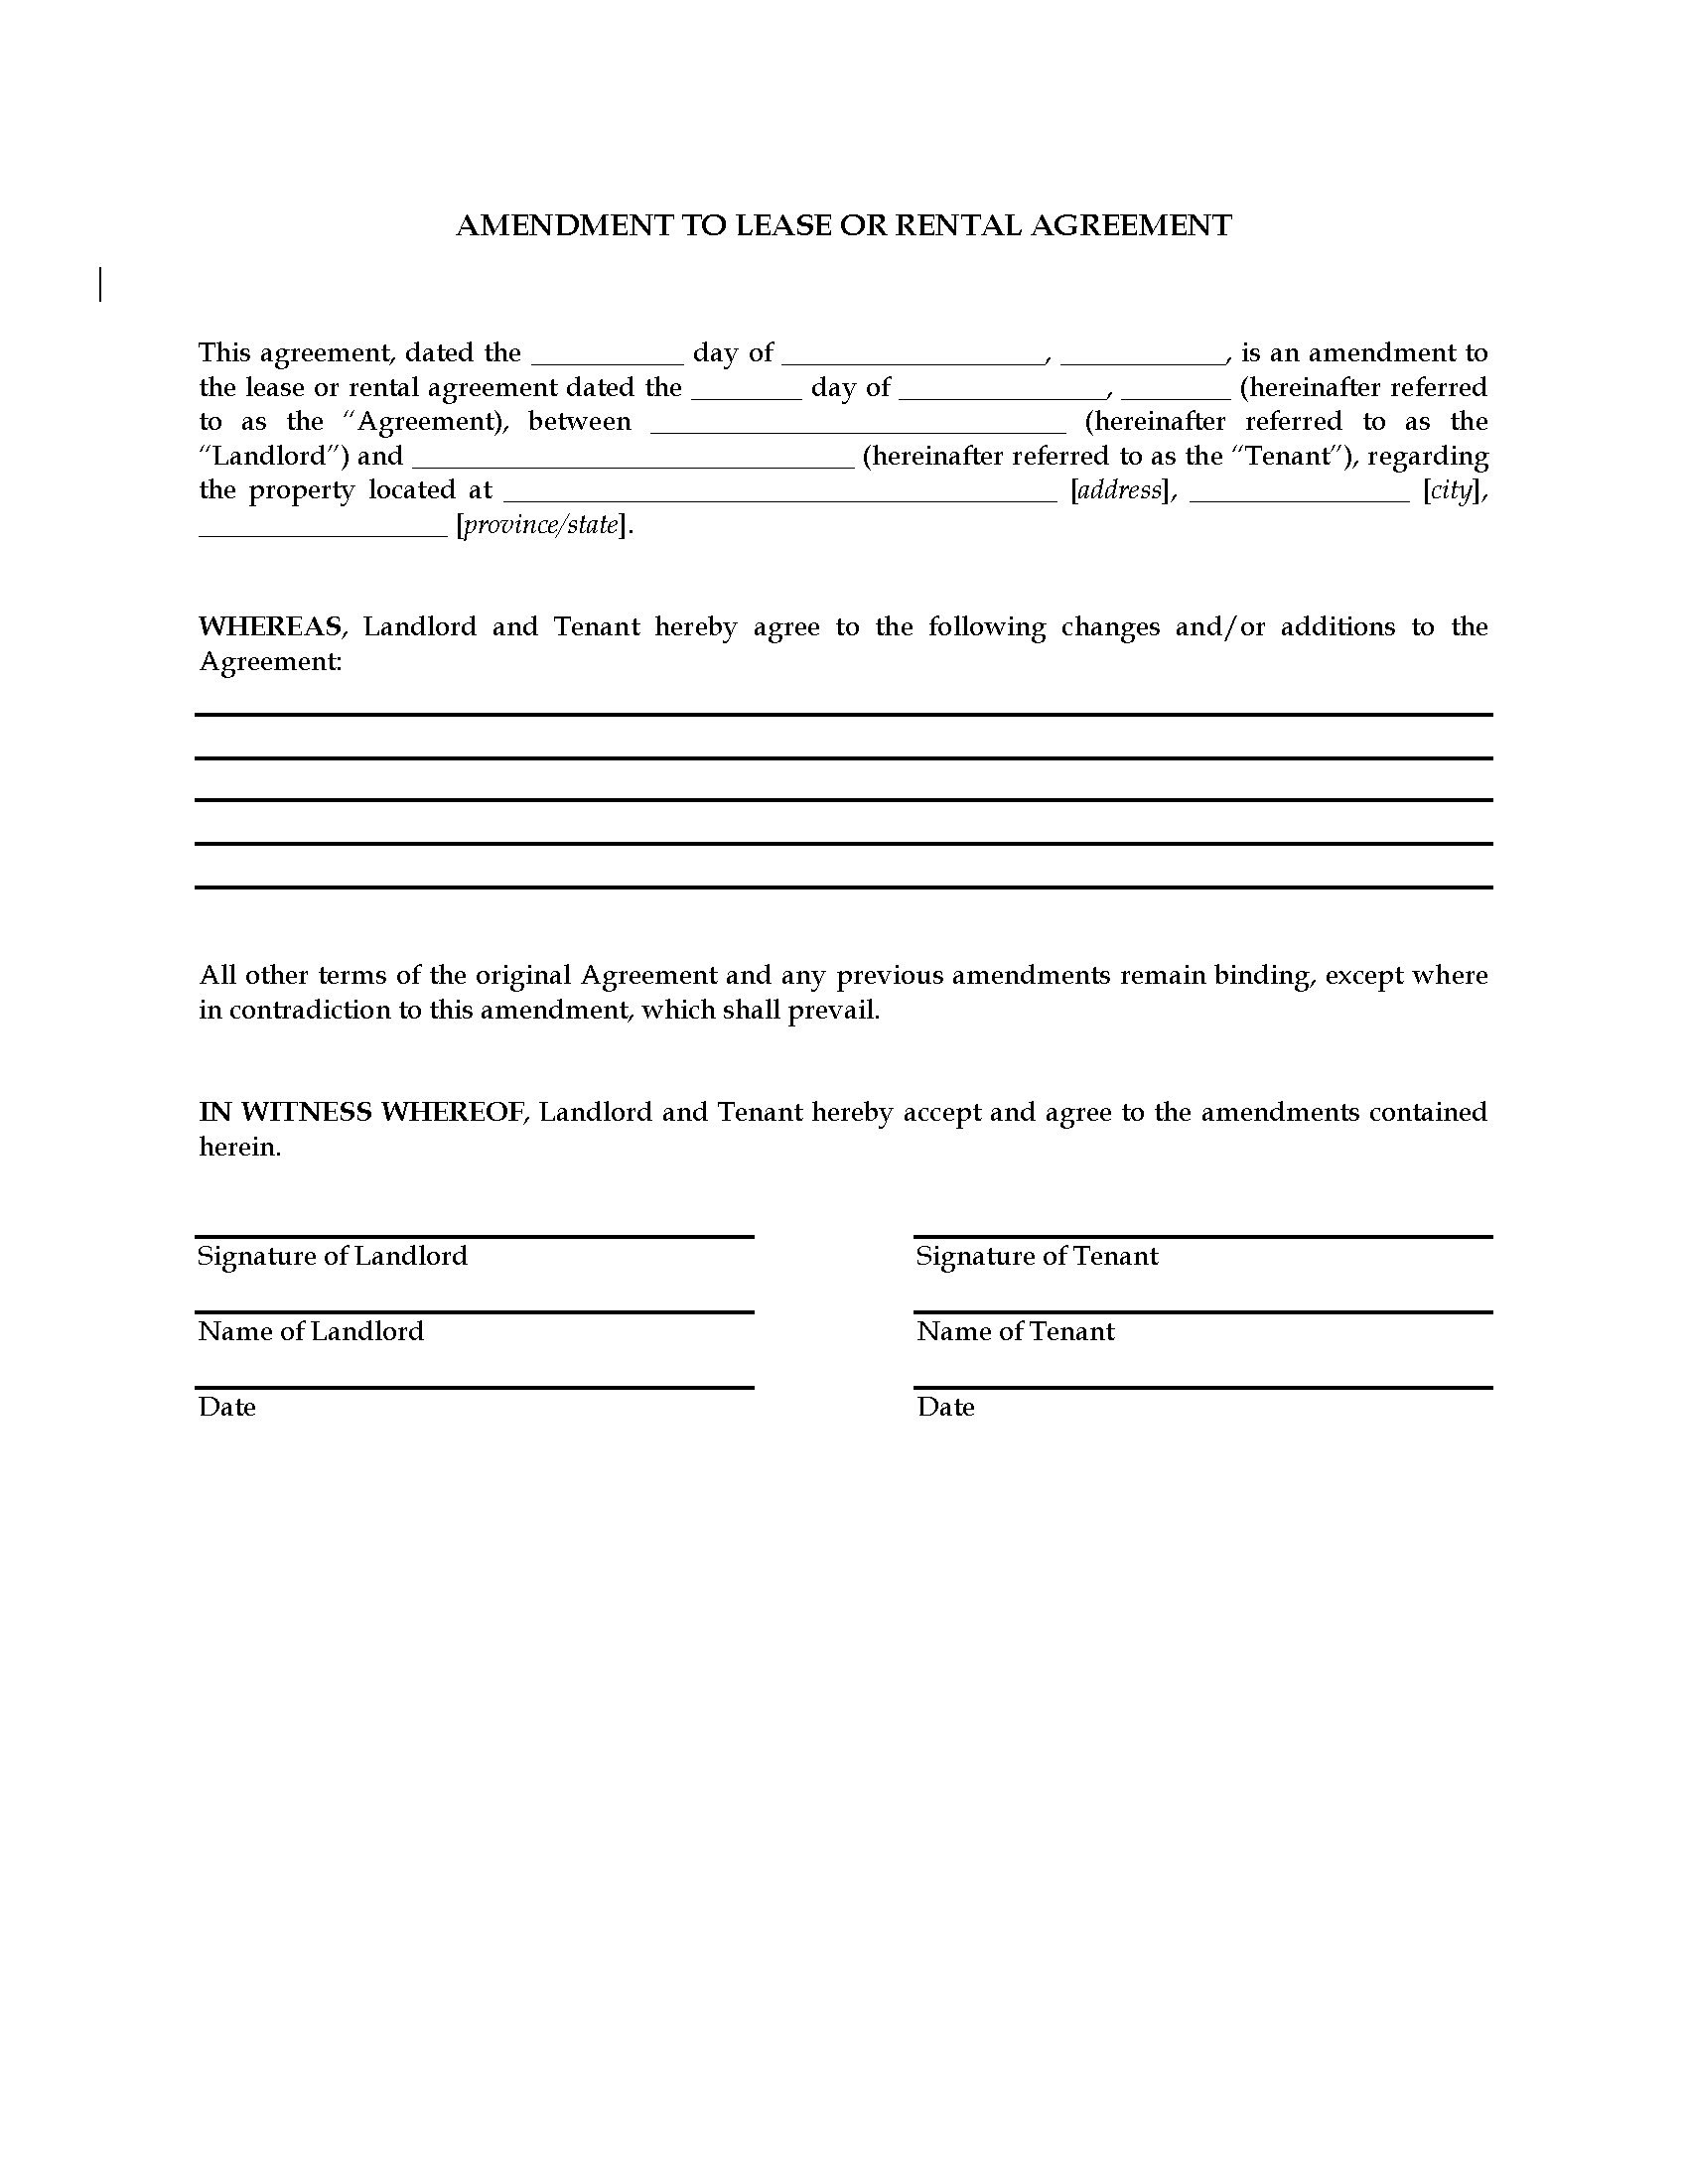 Amendment To Lease Or Rental Agreement  Legal Forms And Business For Business Lease Agreement Template